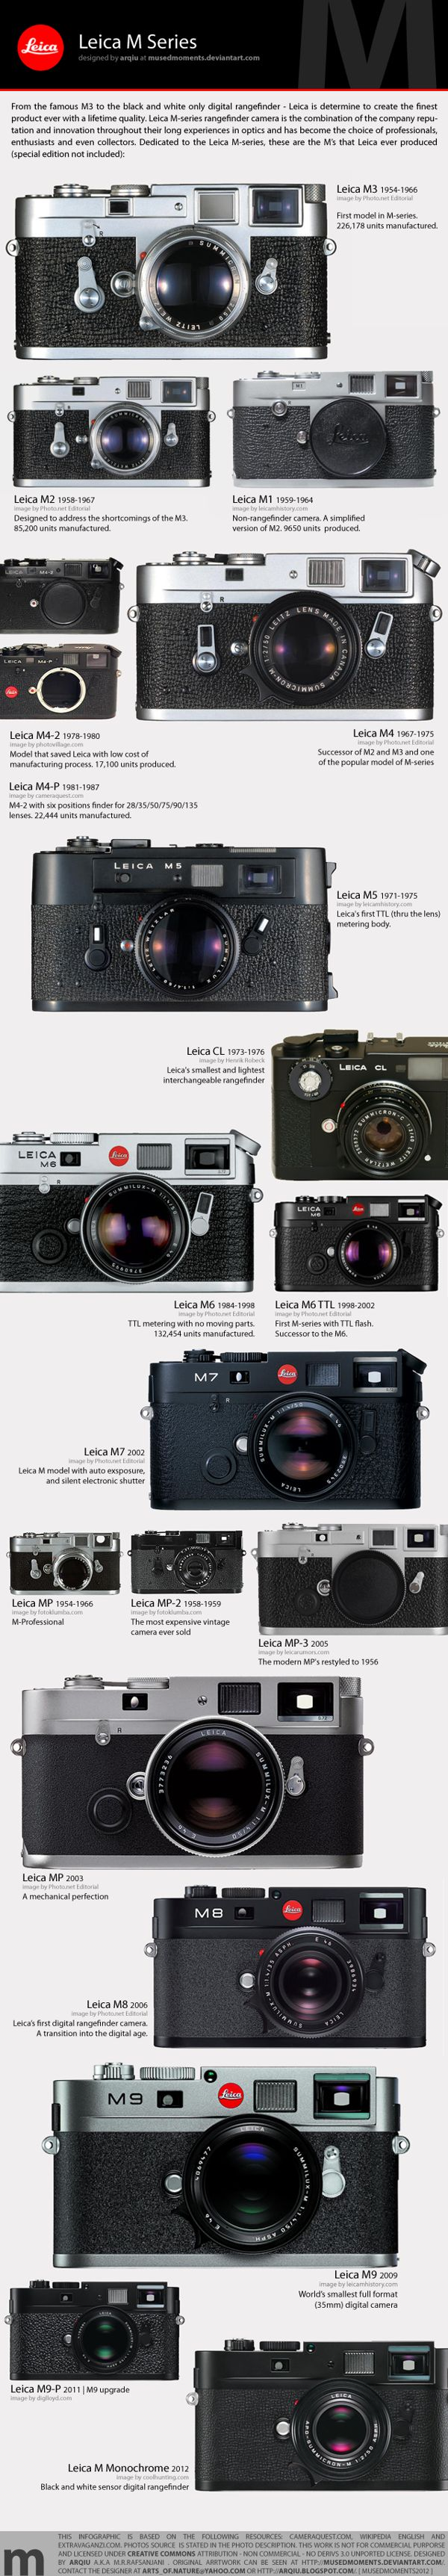 Infographic : Leica Camera Timeline by Arqiu , via Behance